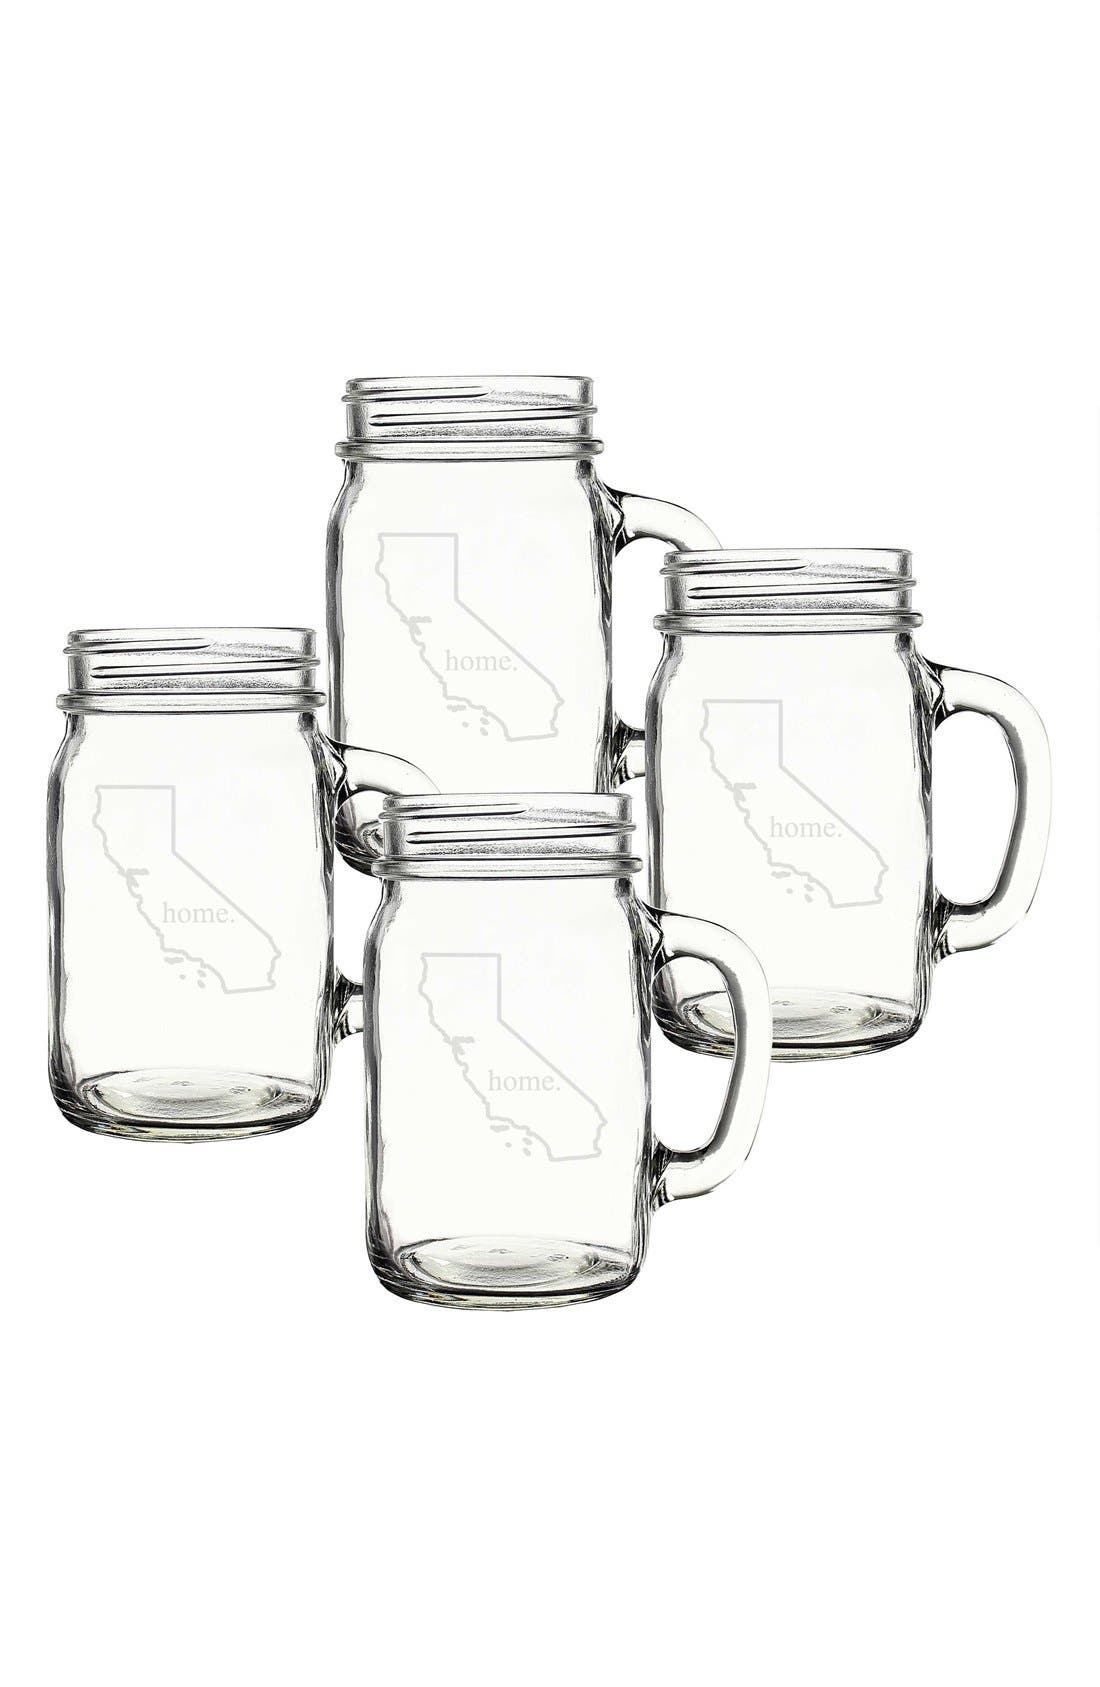 Main Image - Cathy's Concepts 'Home State' Glass Drinking Jars with Handles (Set of 4)